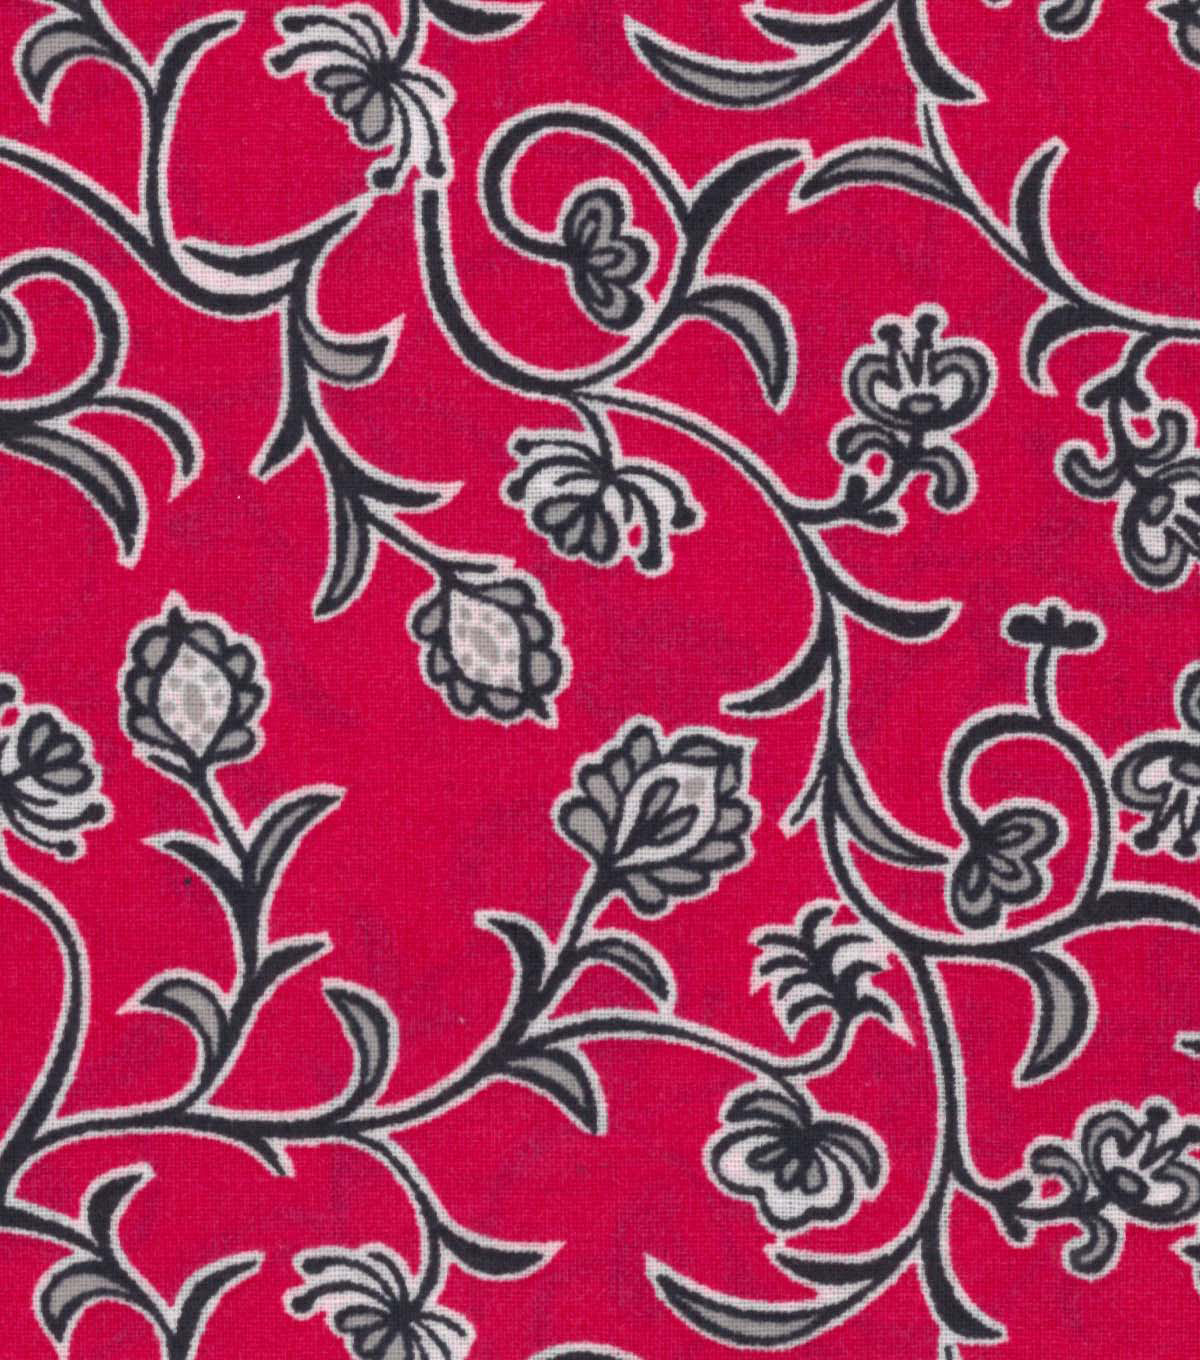 Quilter\u0027s Showcase™ Fabric 43\u0027\u0027-Navy Floral Vines on Raspberry